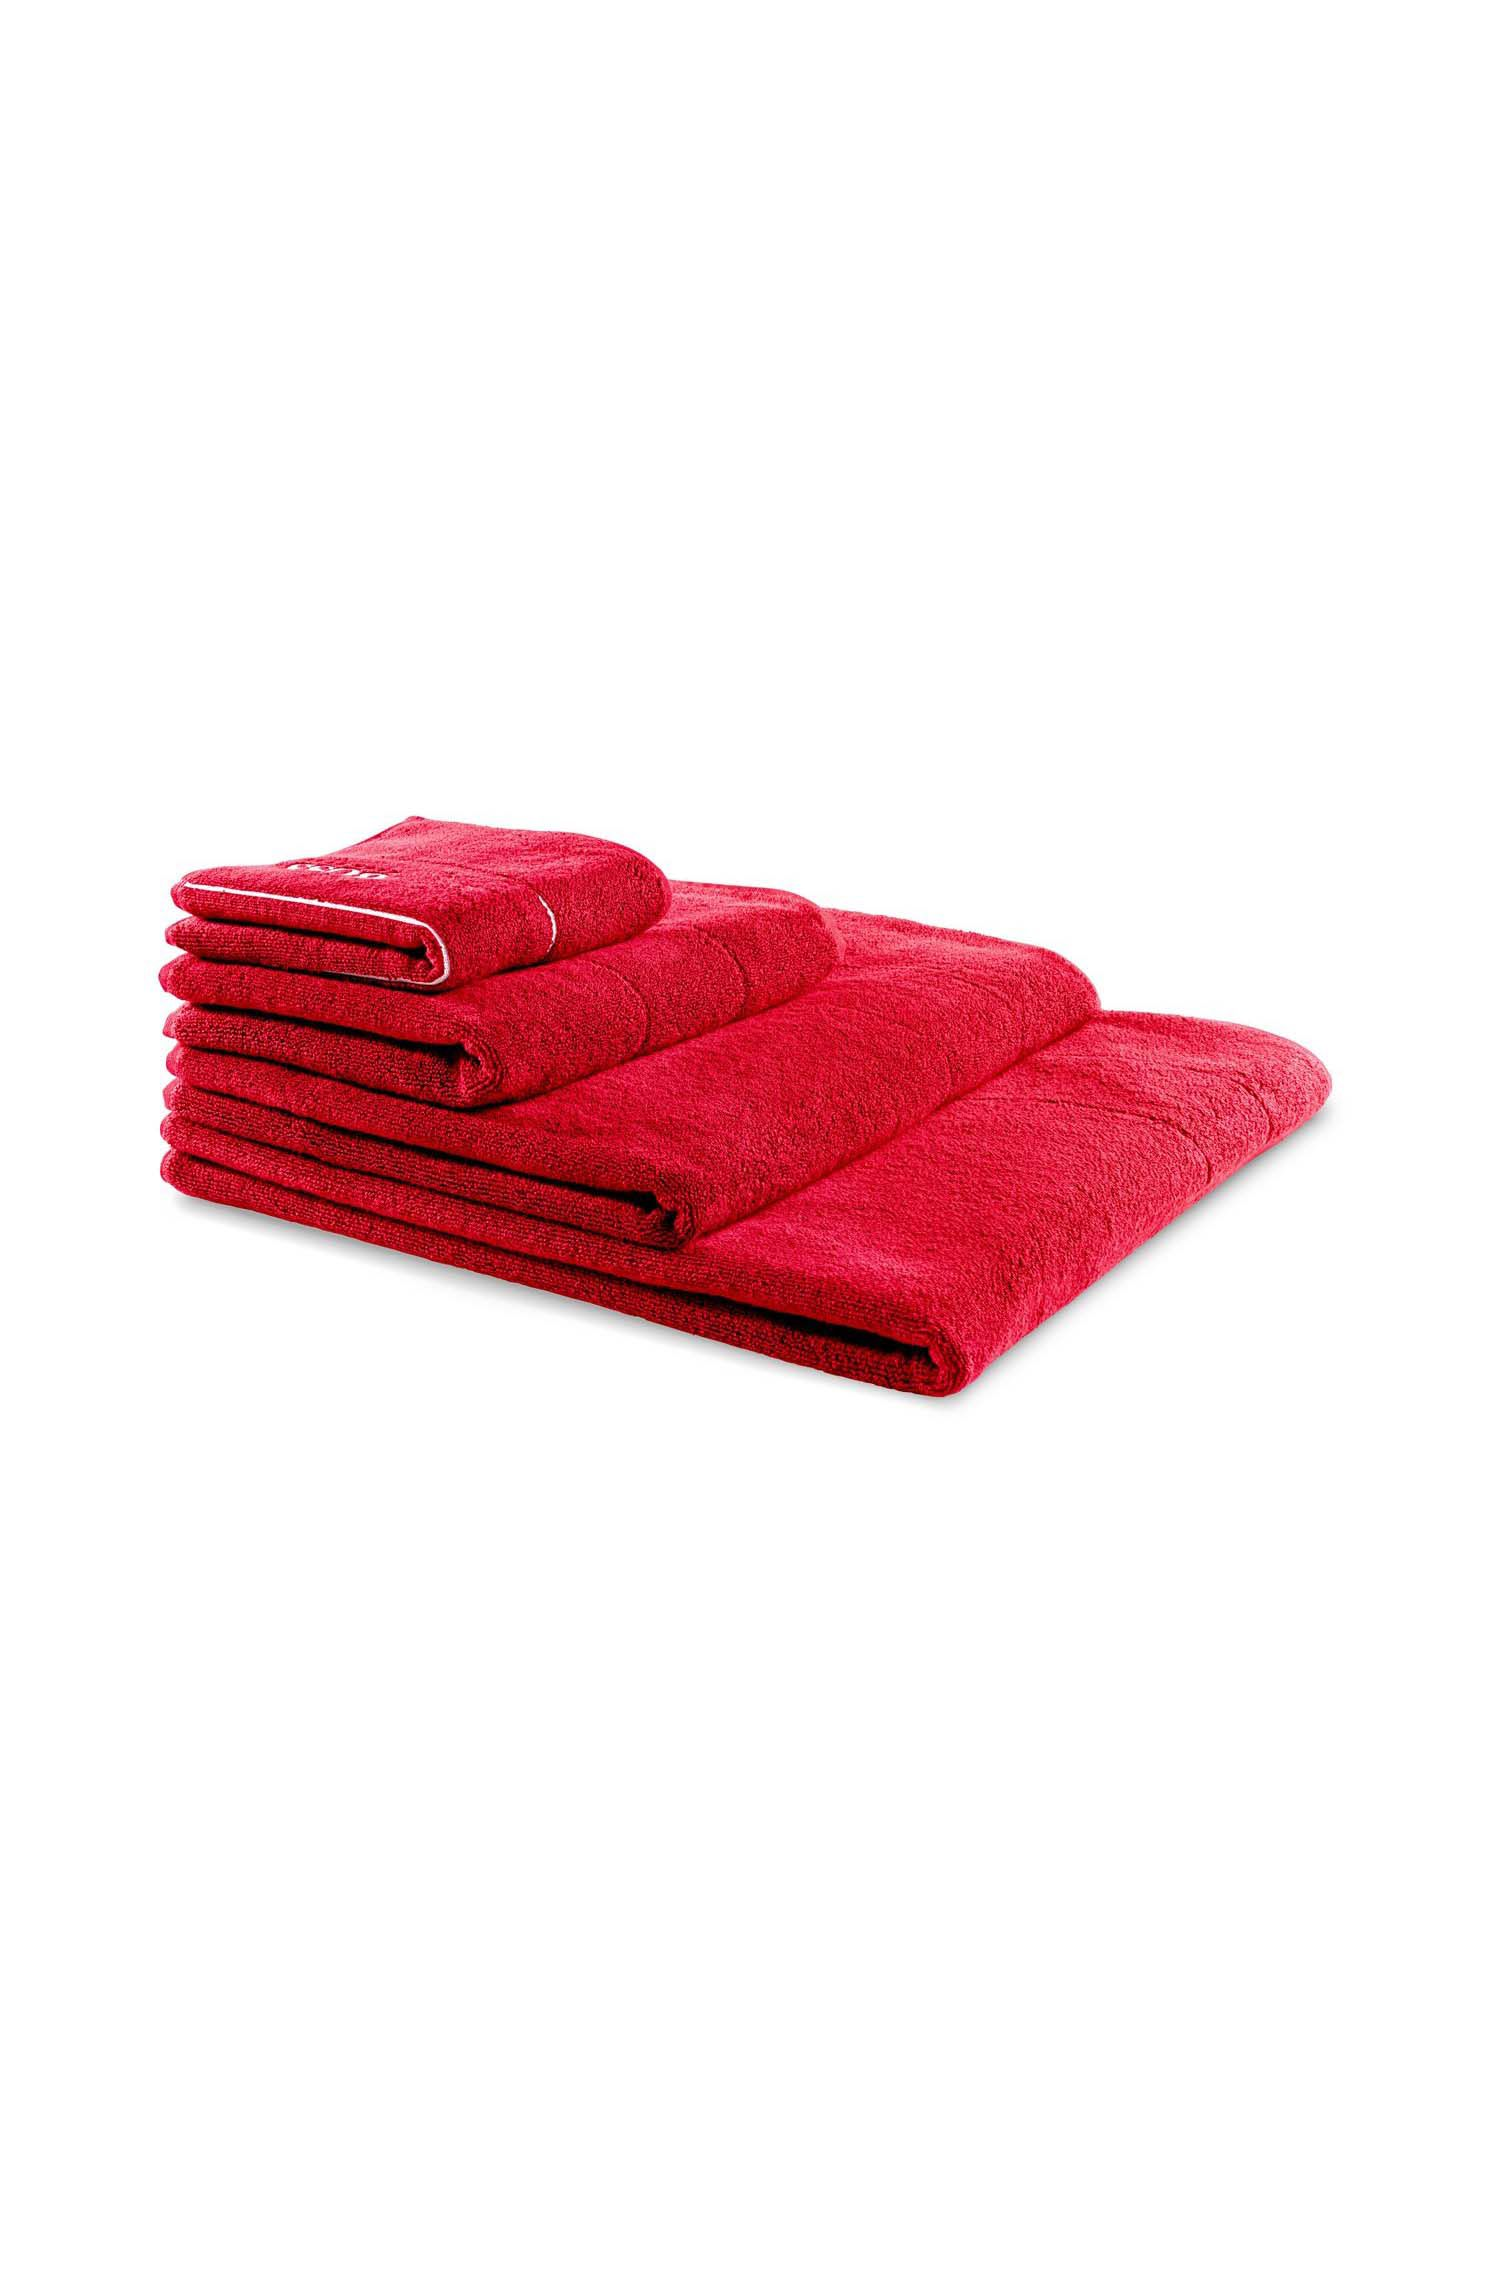 Finest Egyptian cotton bath sheet with logo border, Red